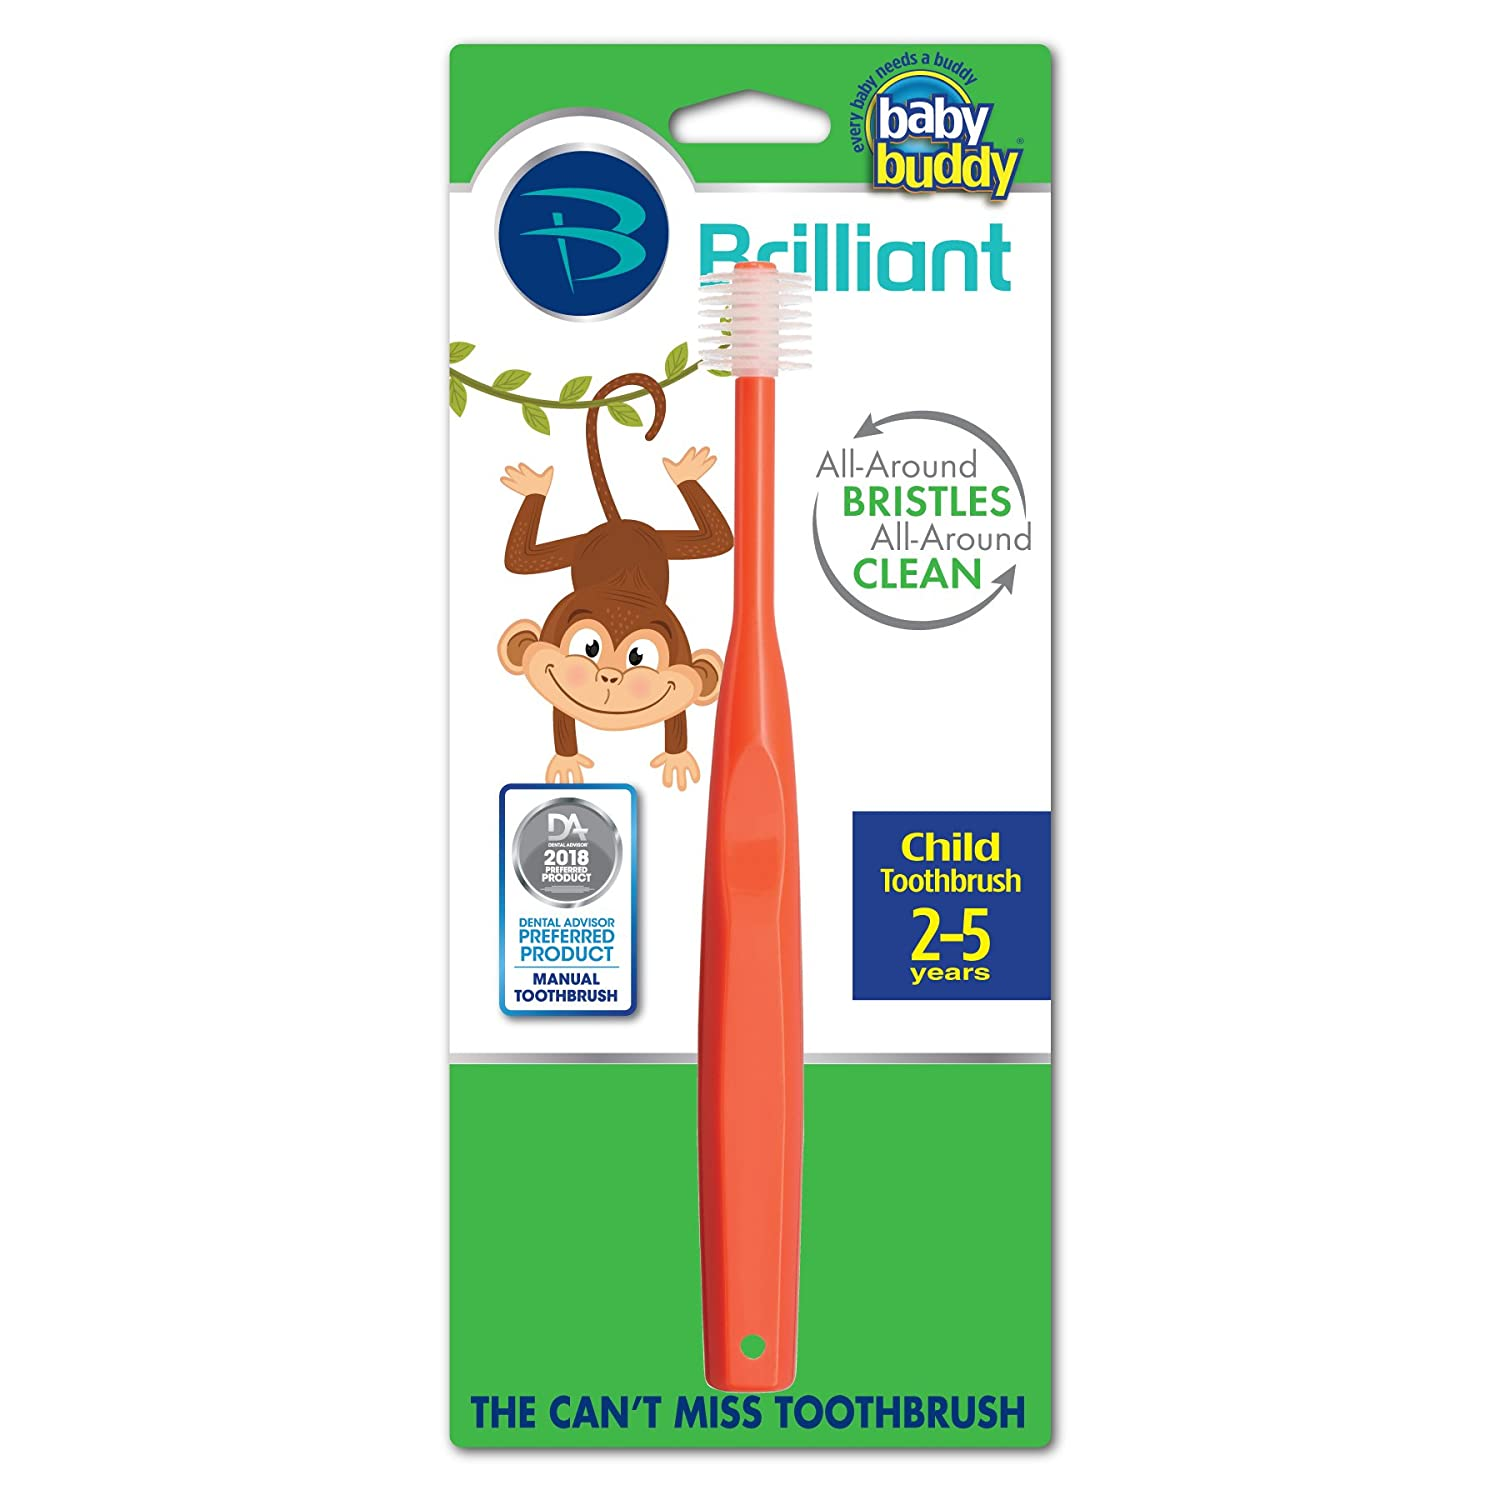 Brilliant Child Toothbrush by Baby Buddy - For Ages 2+ Years, BPA Free Super-Fine Micro Bristles Clean All-Around Mouth, Kids Love Them, Purple, 3 Count 03577PP